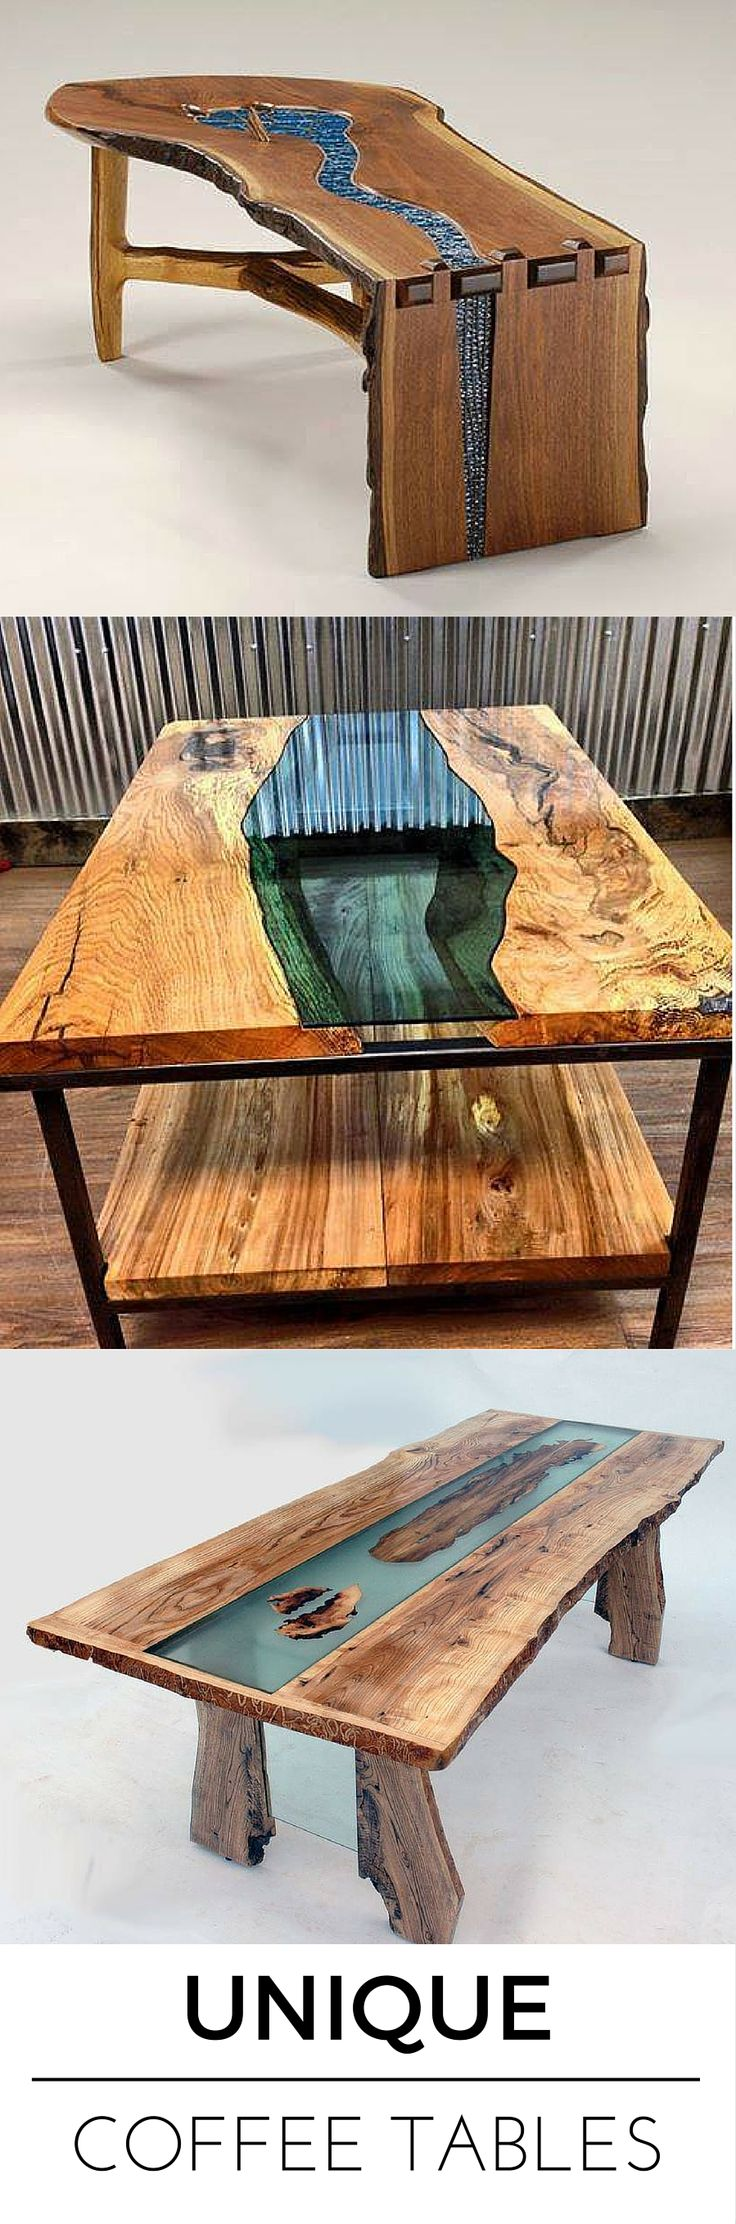 Unique Coffee Tables 25 Best Unique Coffee Table Ideas On Pinterest  Industrial Love